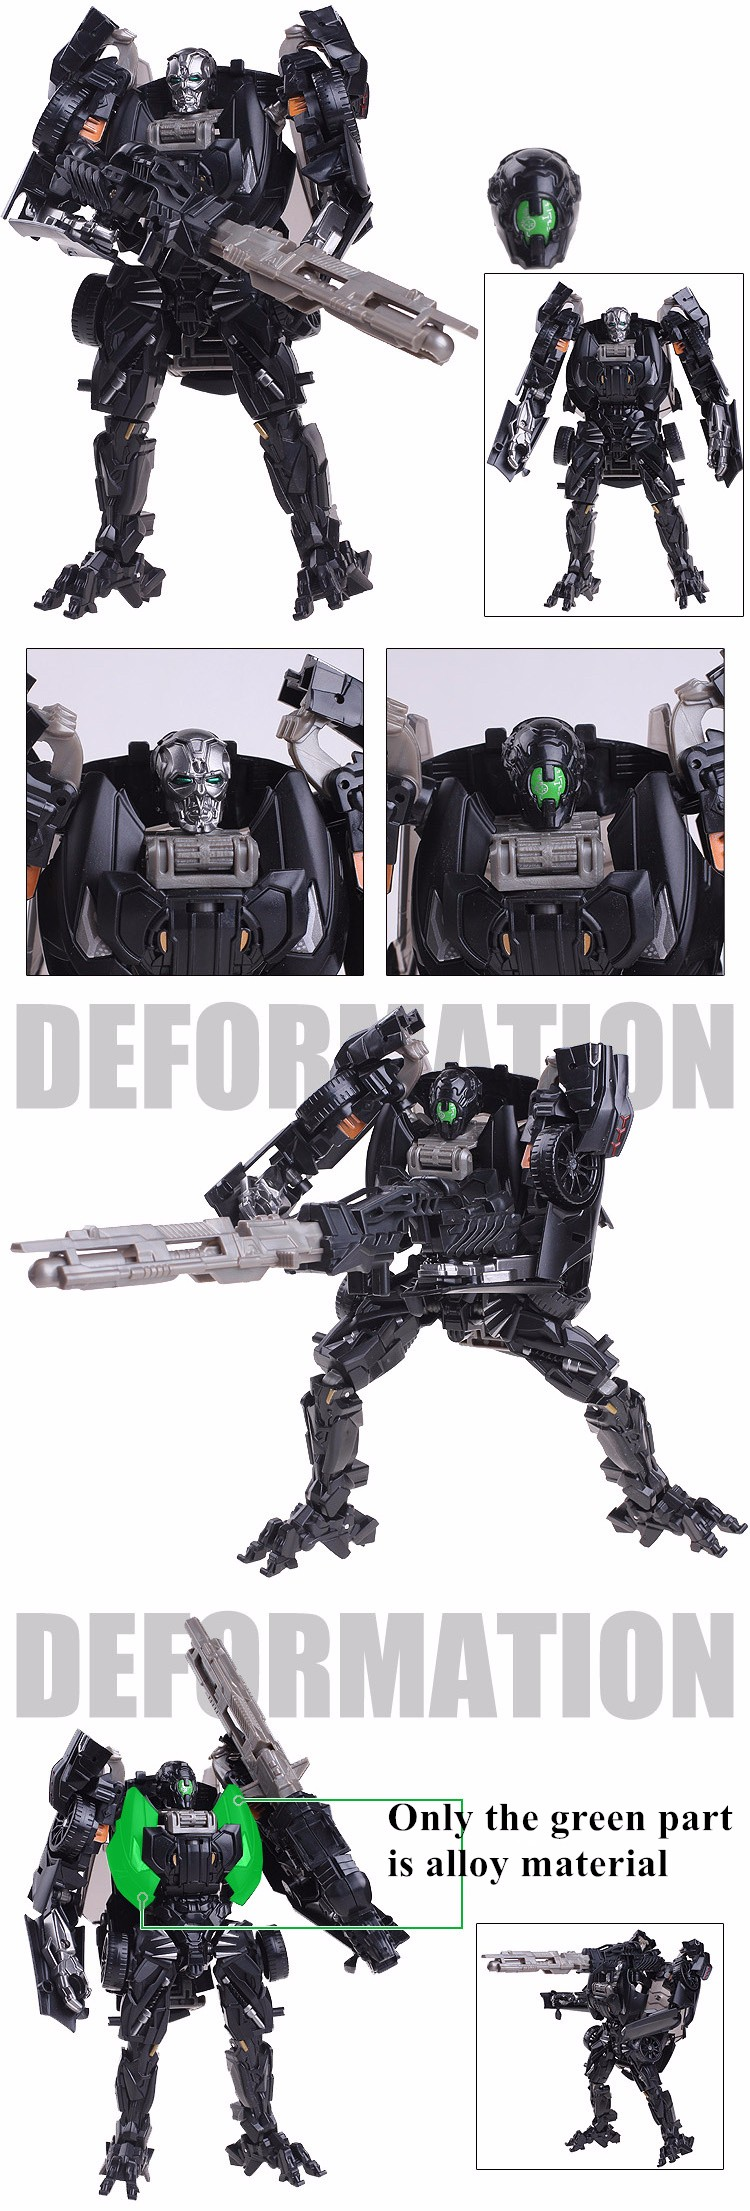 ламборгини трансформер Plastic ABS + Alloy Transformation Action Figure Toys Classic Movie 4 Series Robot Car Cool Juguetes Boy Toys Party Gift